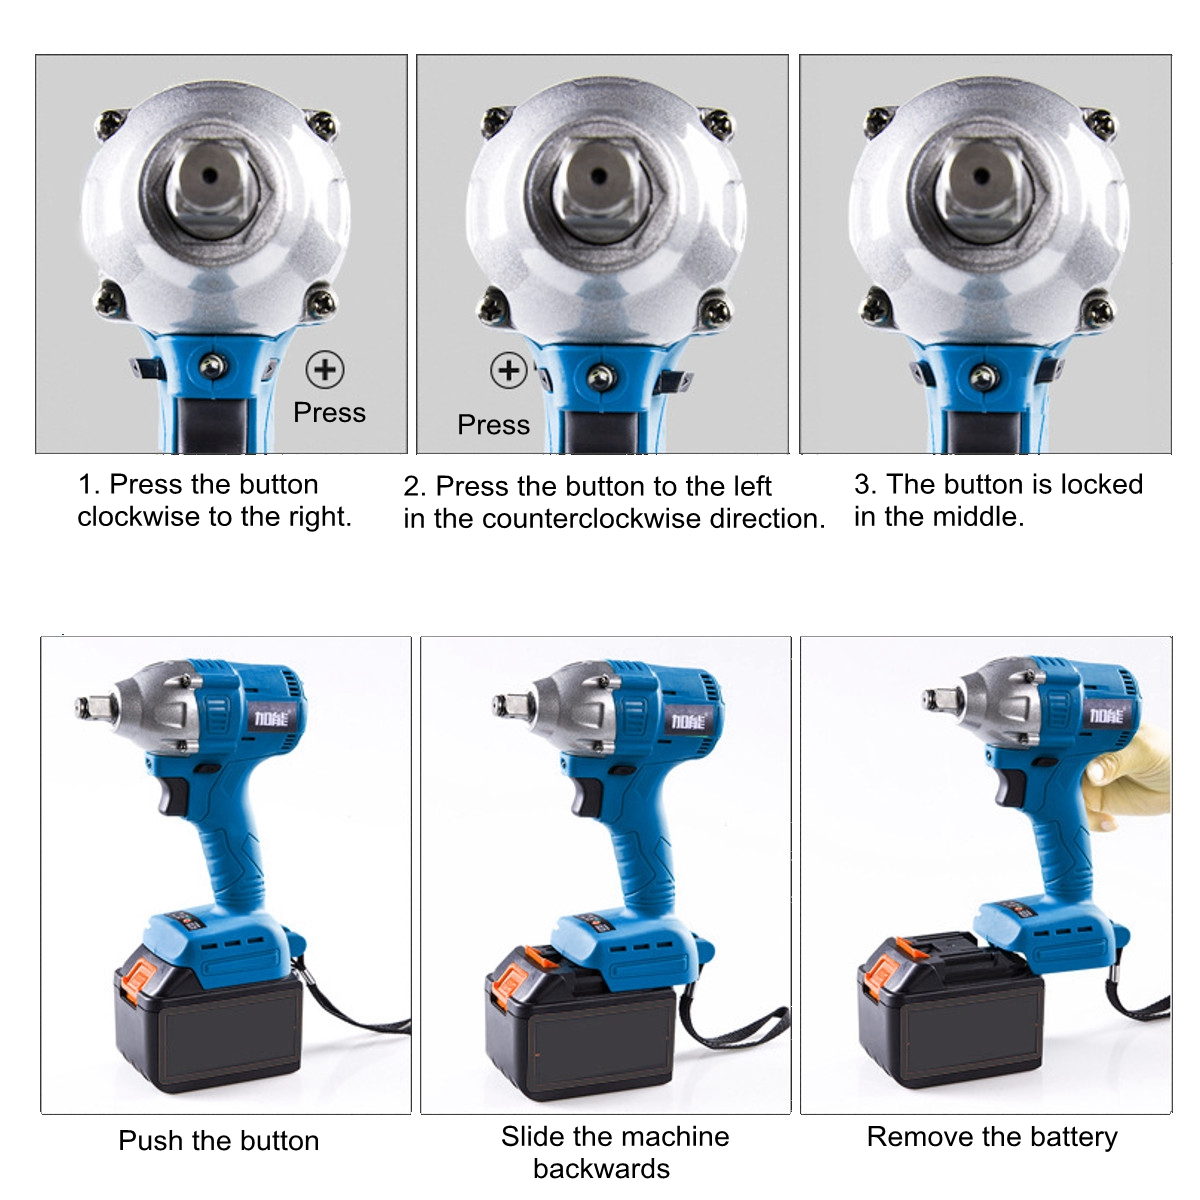 96V Cordless Electric Wrench 320NM Power Wrench 1/2'' Drive Li-ion Battery W/ LED Light